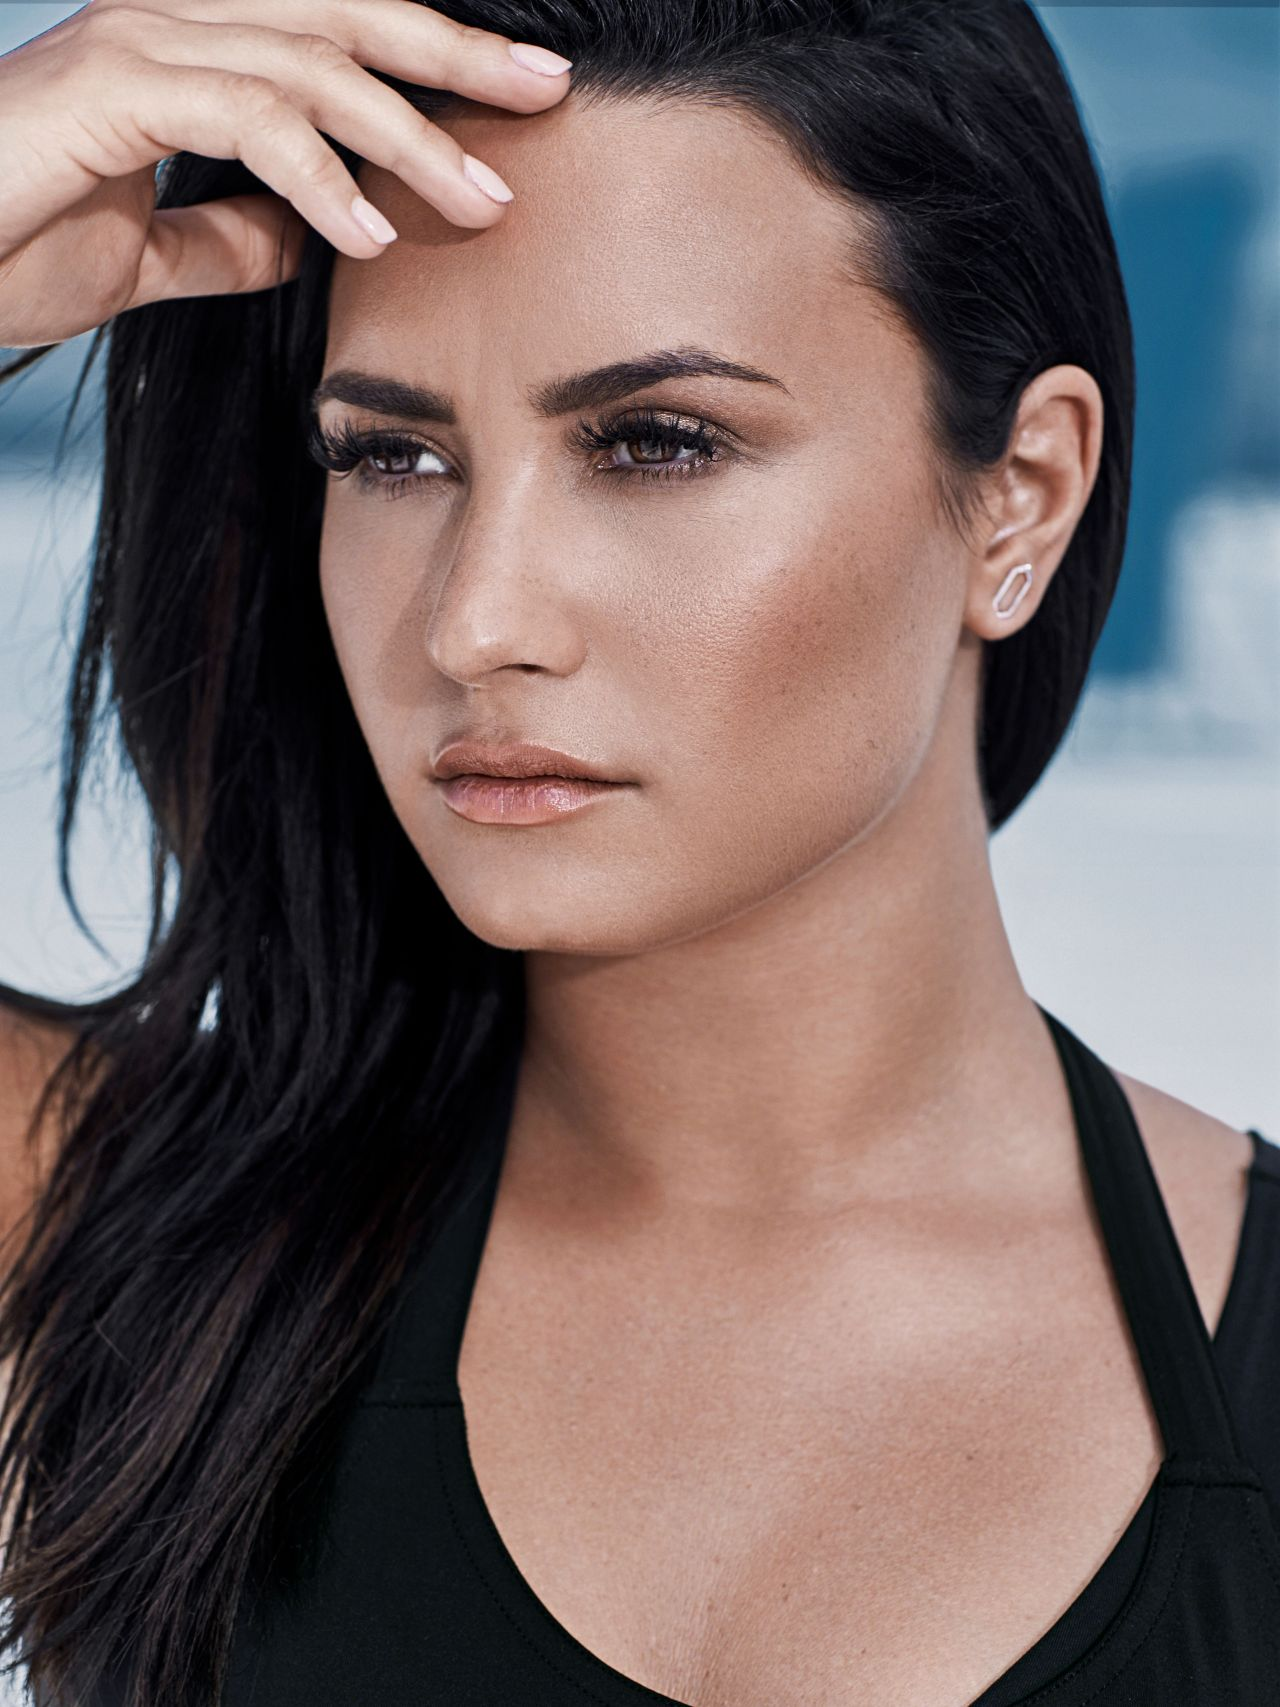 demi lovato - photo #11